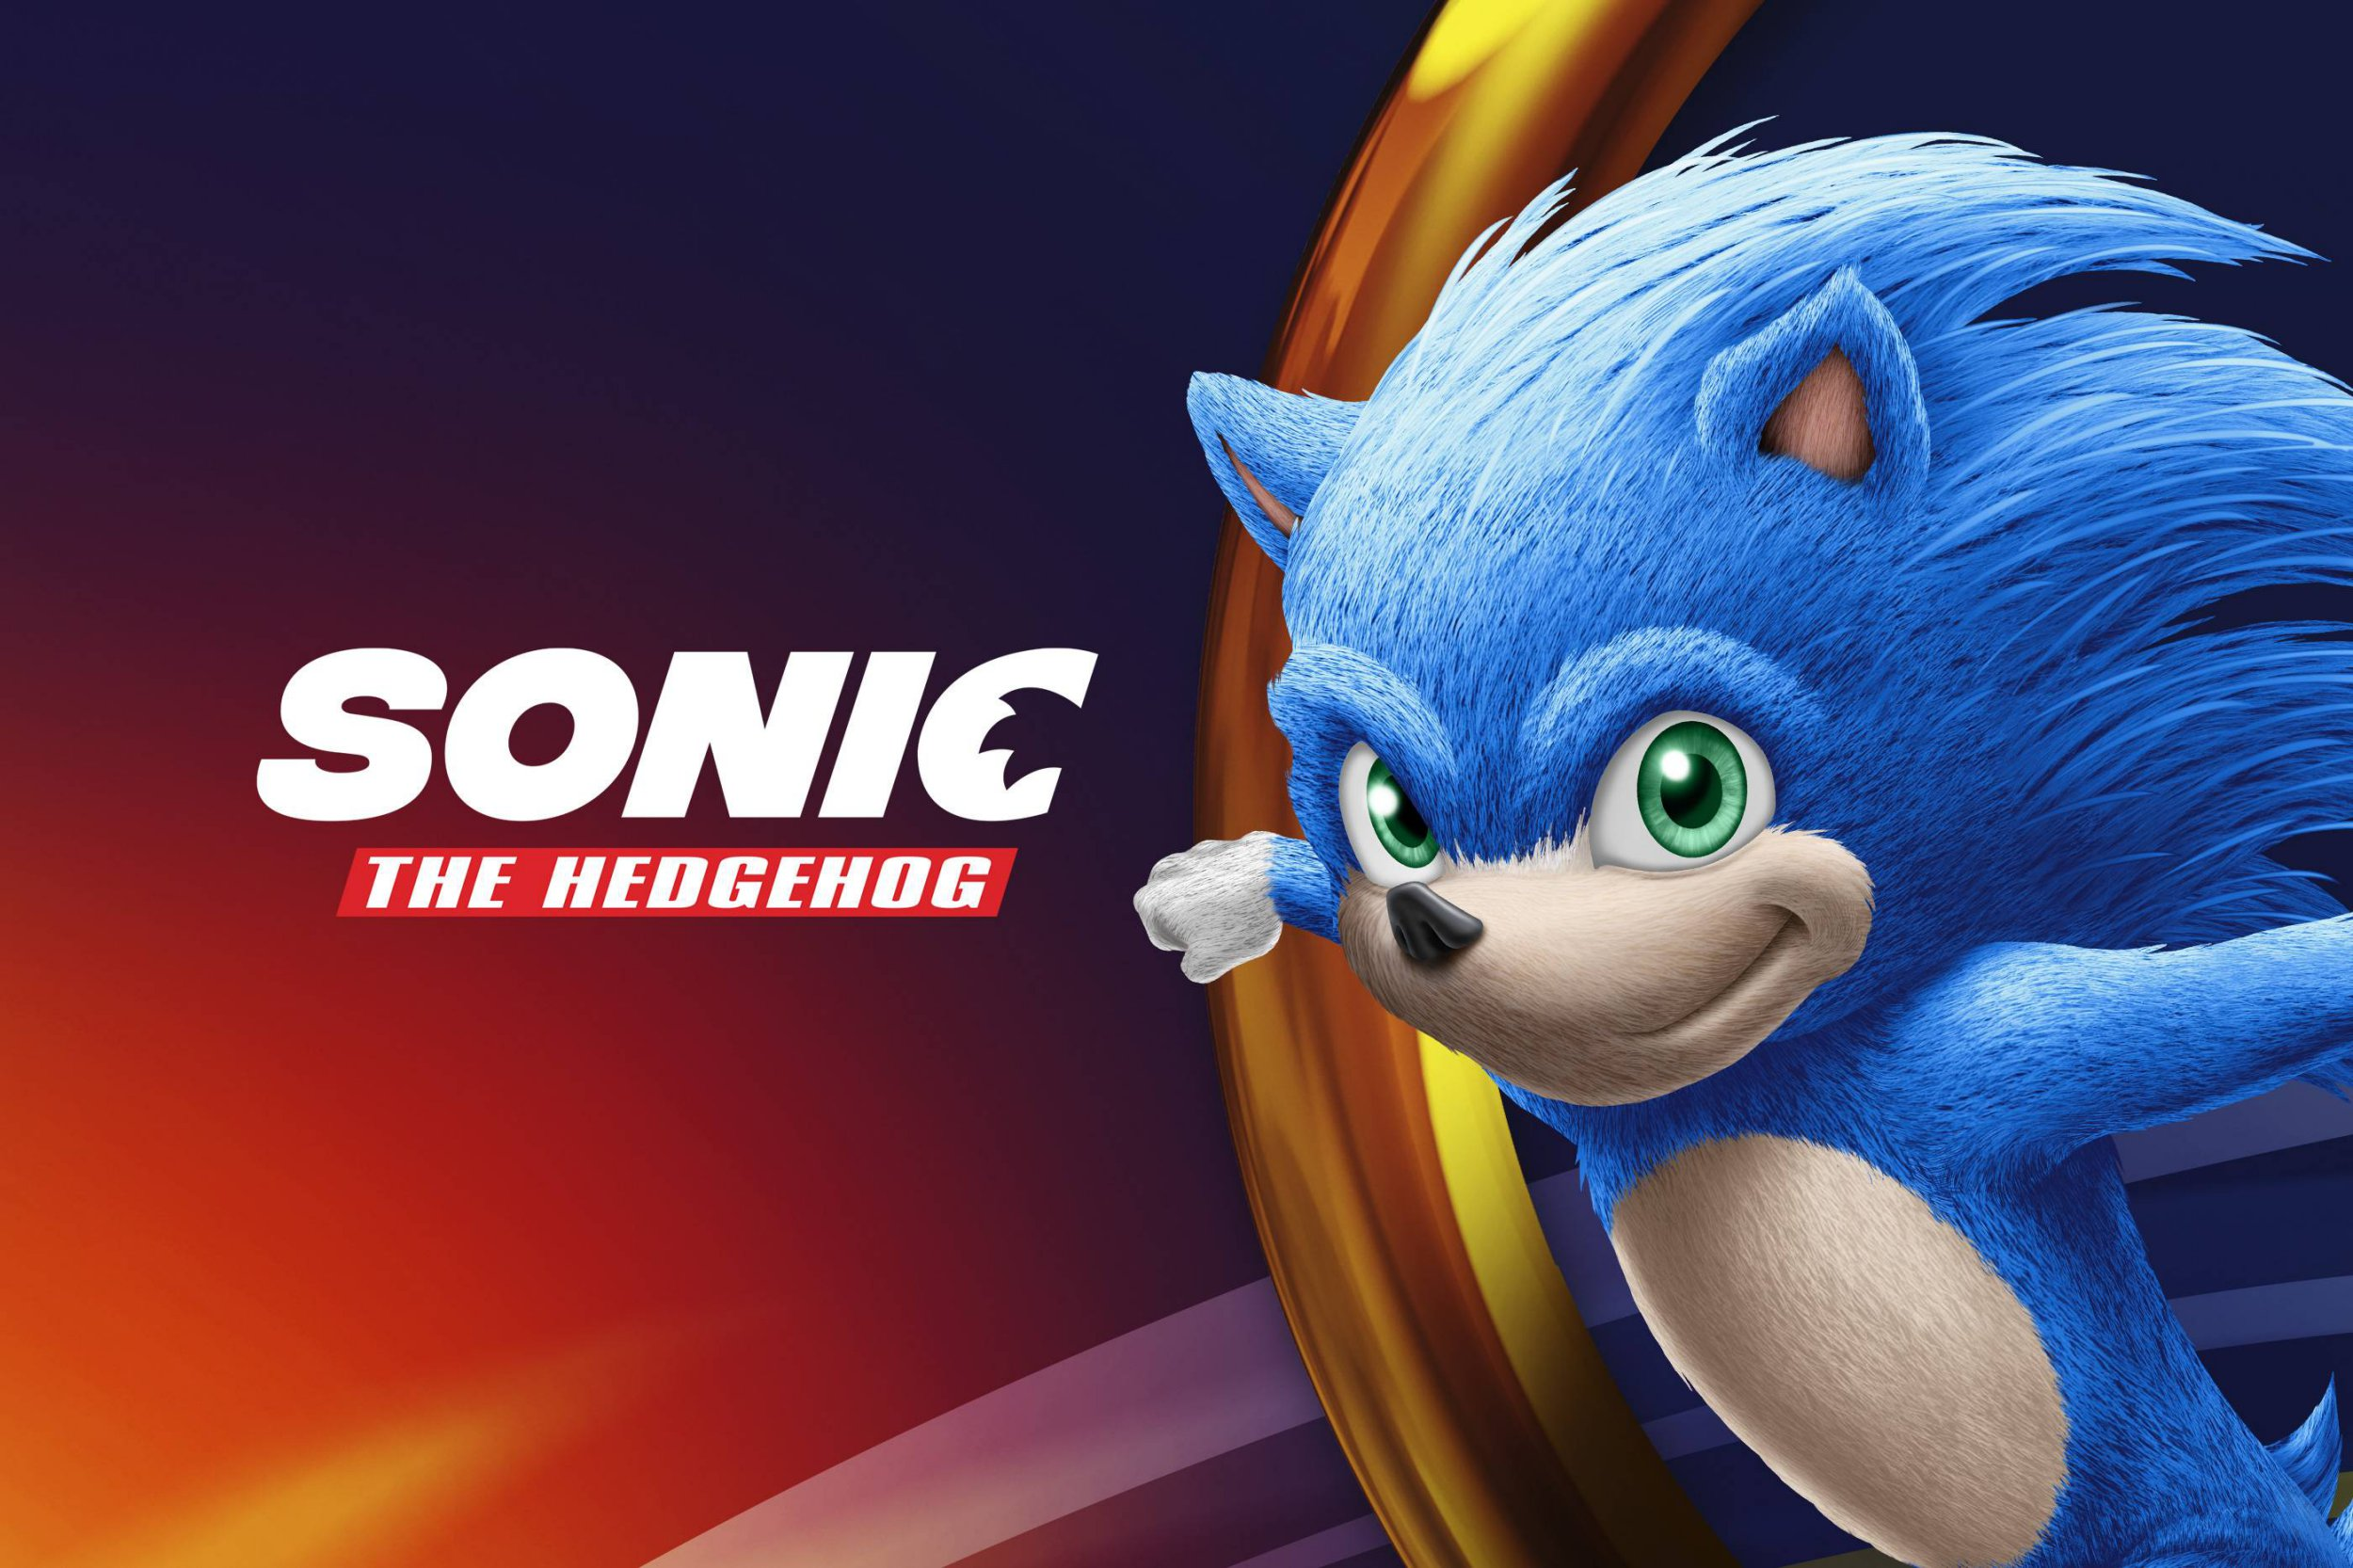 Games Inbox: Sonic The Hedgehog movie design, The Division 2 open beta, and Resident Evil 5 co-op